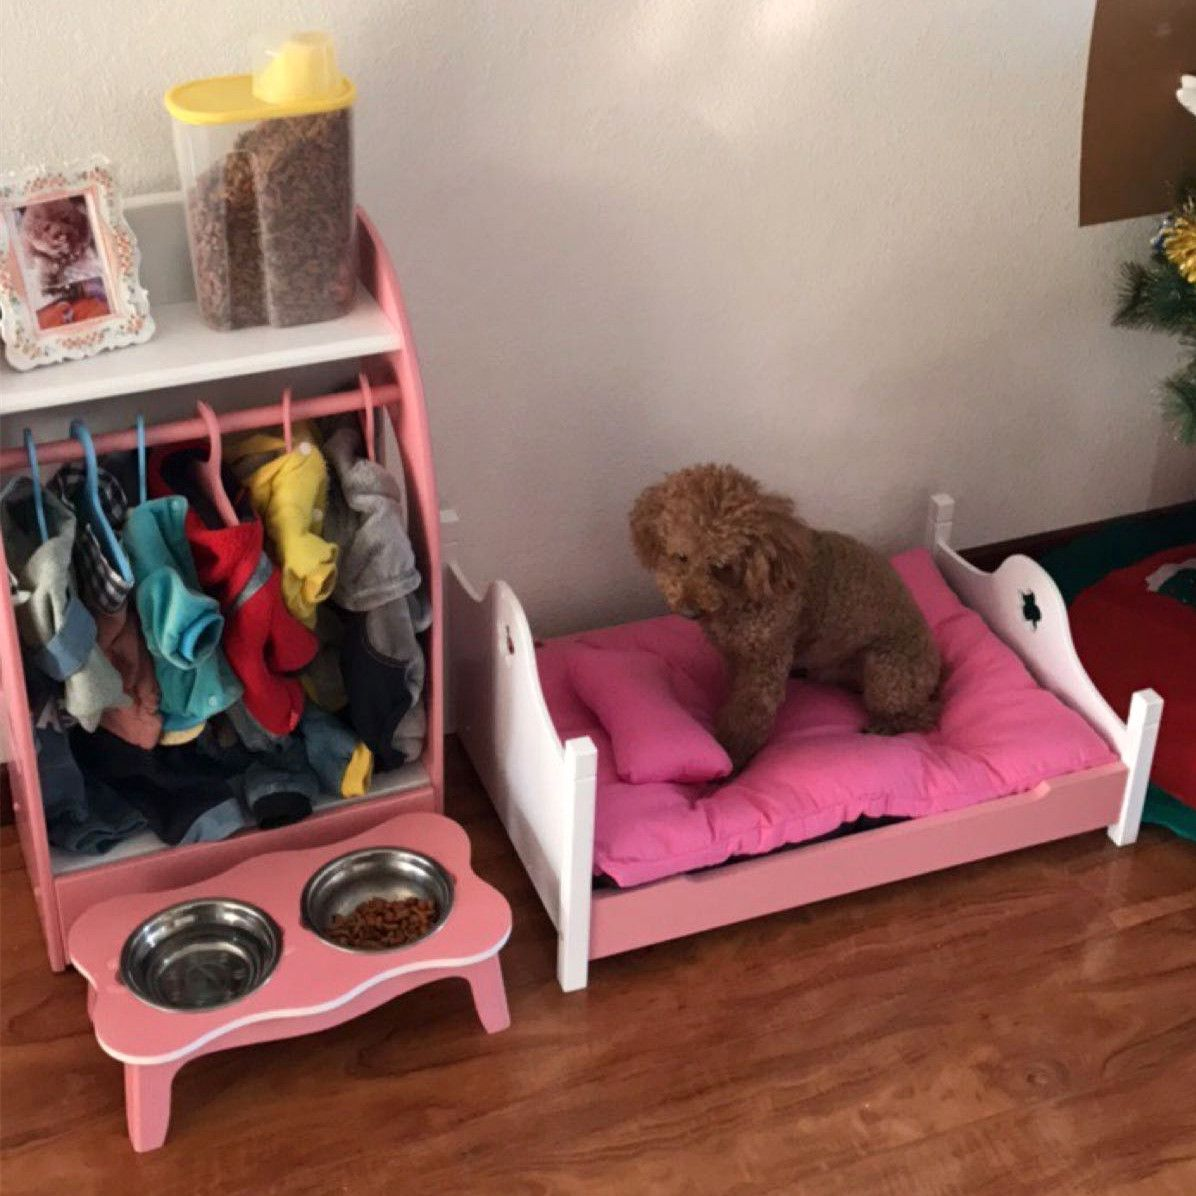 Buy Pet Home Set Pet Wooden Bed Dog Wardrobe Pet Bowl Rack Dog Bed Kennel Princess Bed Cat Bed Cat Supplies In Buytome Com Dog Rooms Puppy Room Dog Closet